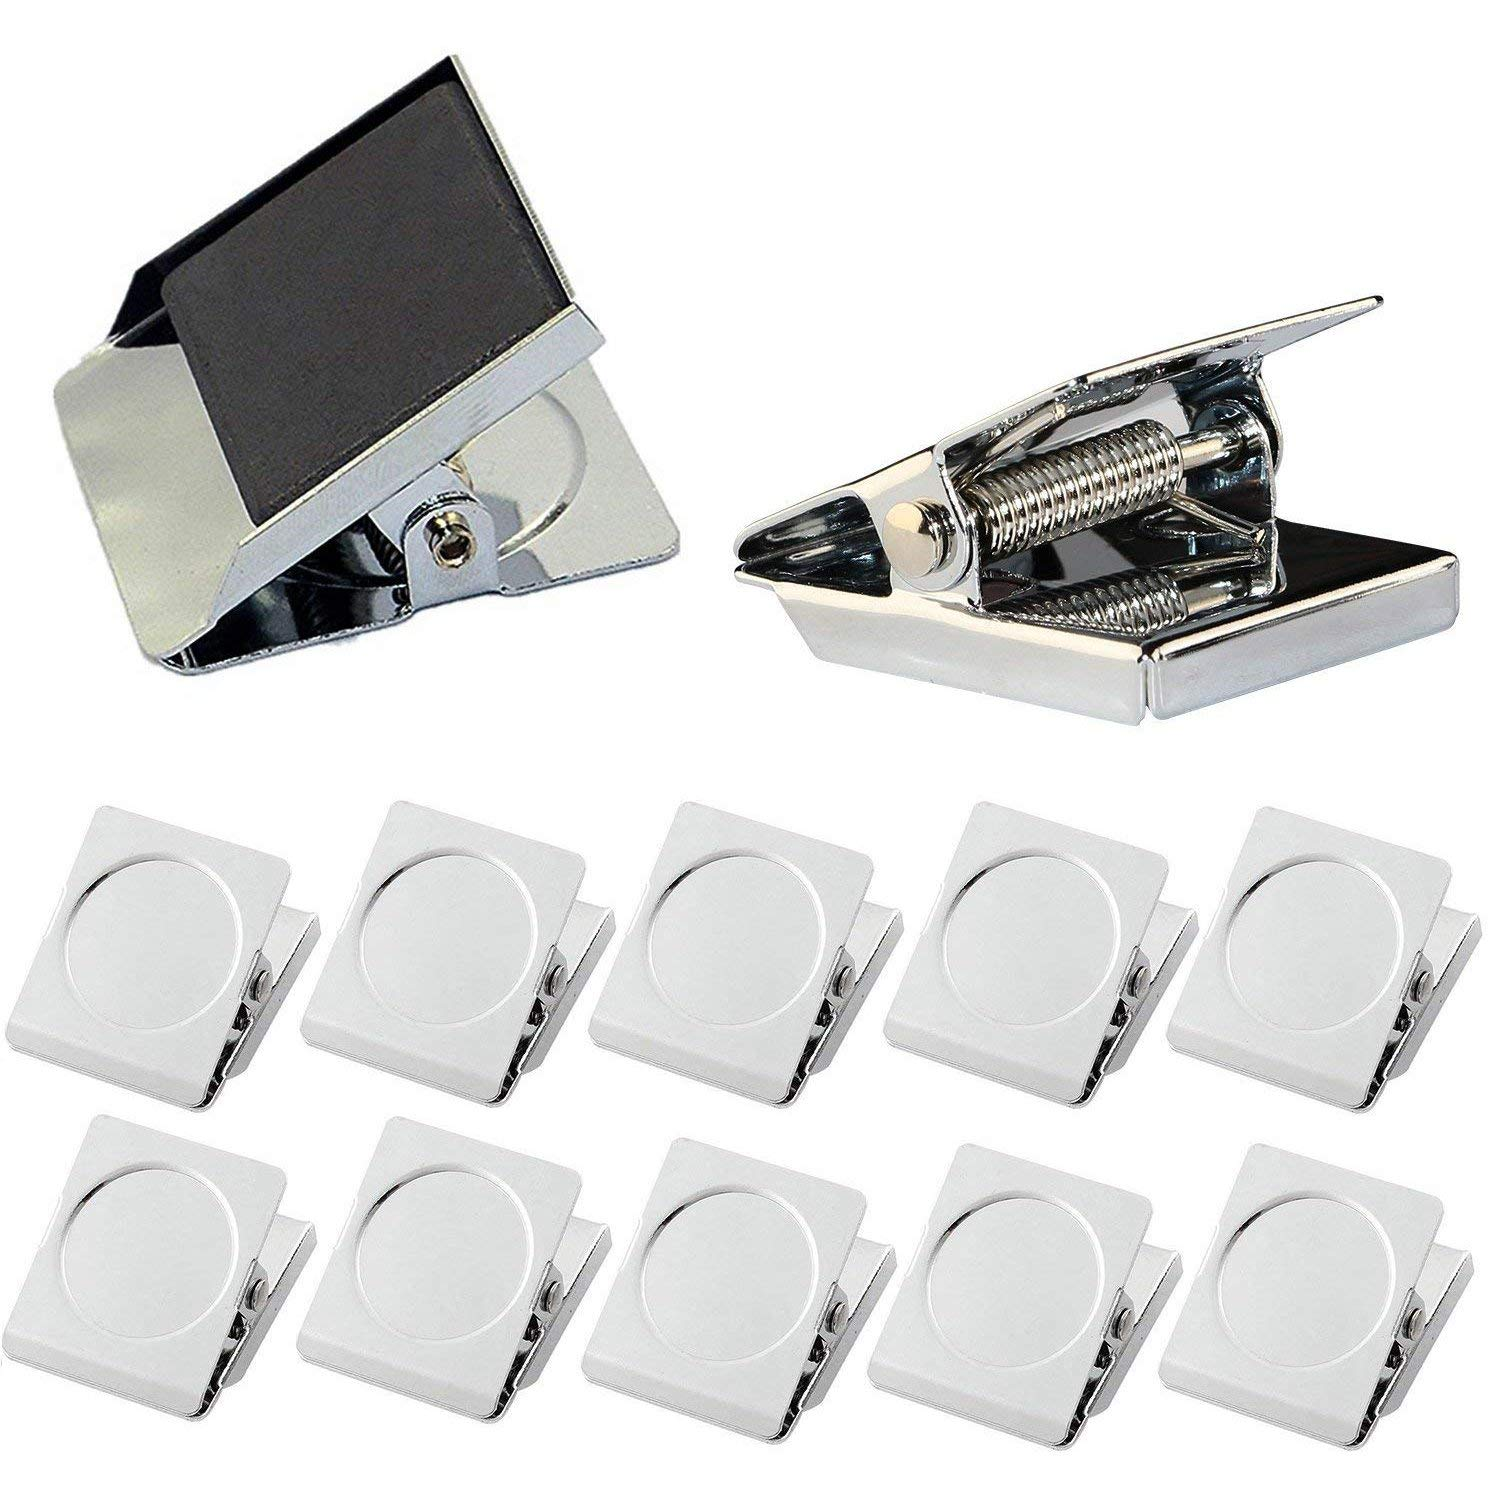 Magnetic Clips,12 PCS Square Refrigerator Magnetic Hook Clips, Fridge Magnets Refrigerator Magnet Office Magnets Photo Magnets